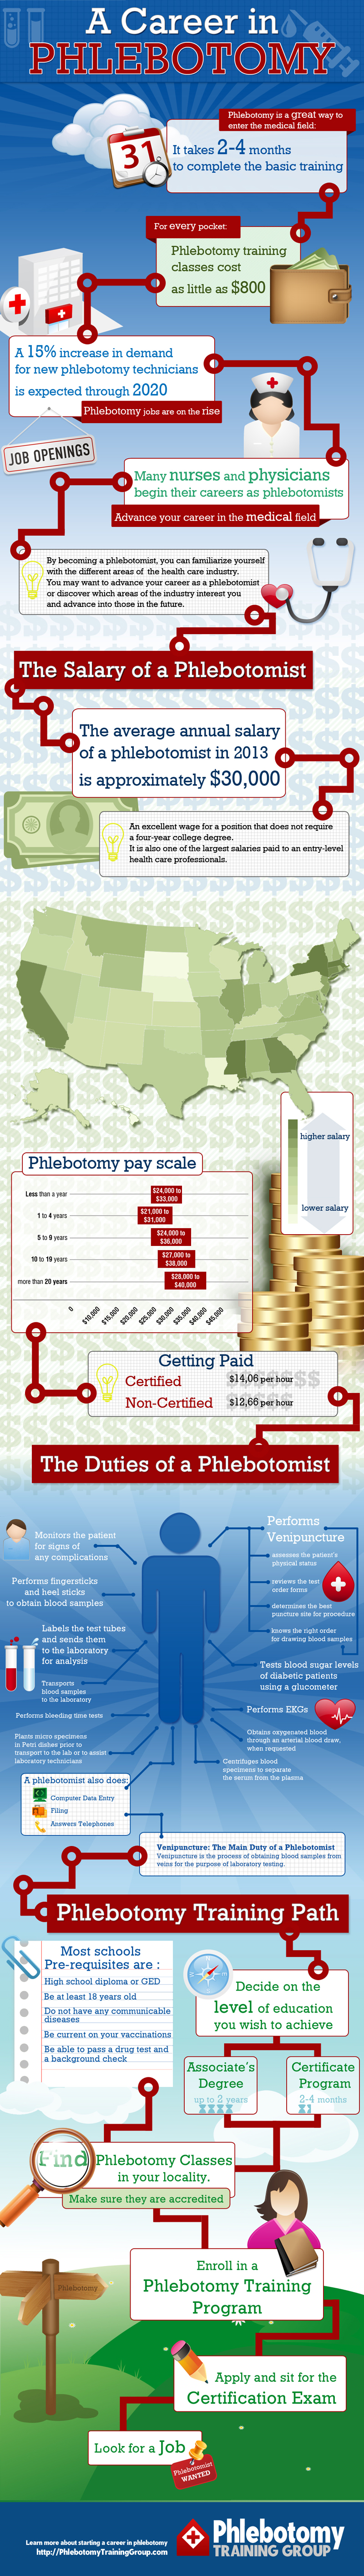 A Career in Phlebotomy